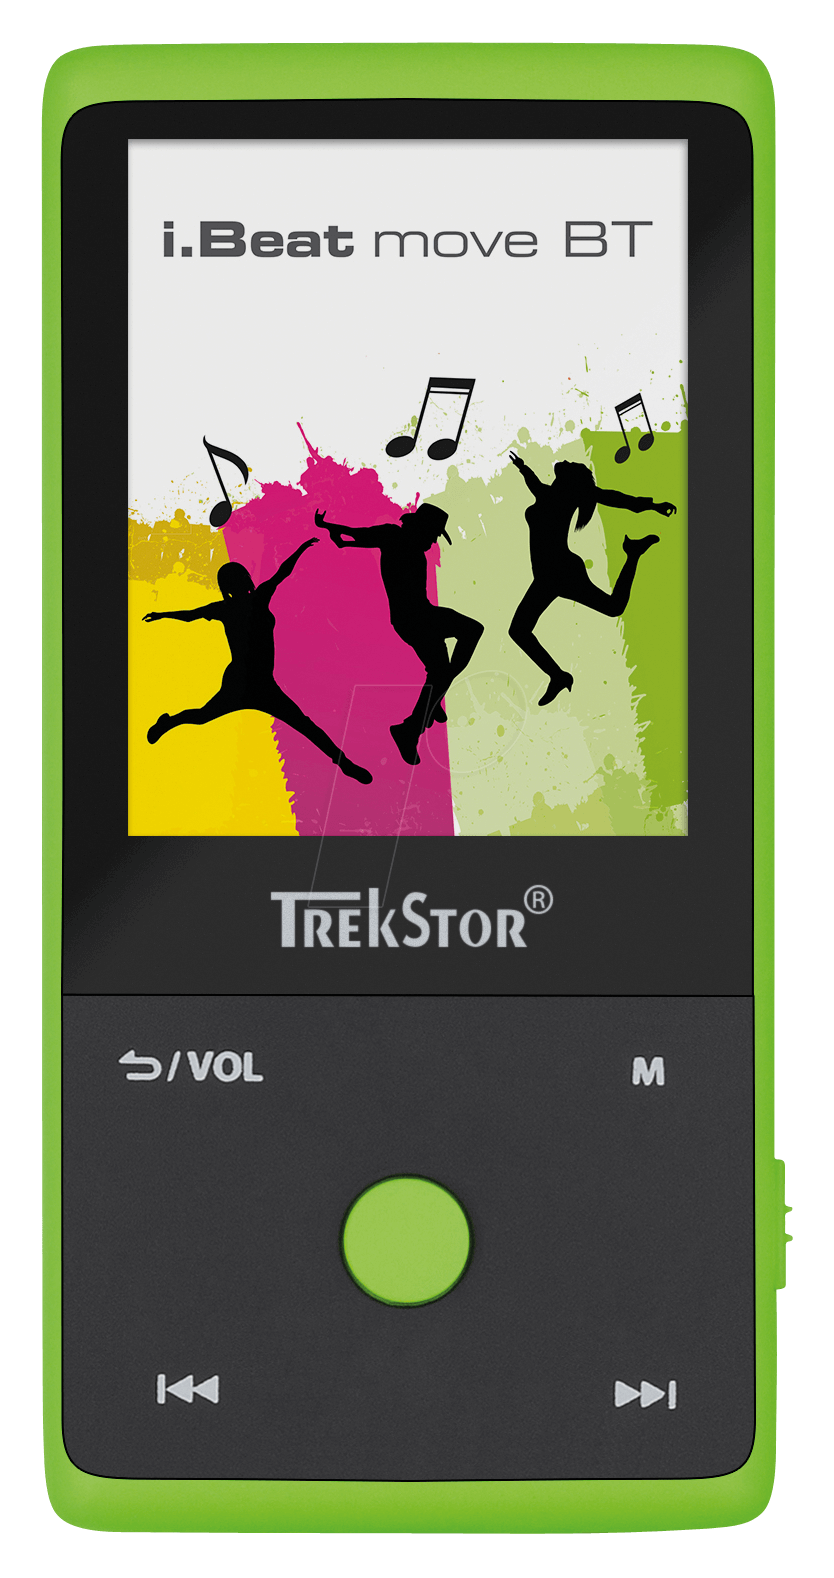 https://cdn-reichelt.de/bilder/web/xxl_ws/I600/TREKSTOR_IBEAT_MOVE_BT_GREEN_02.png